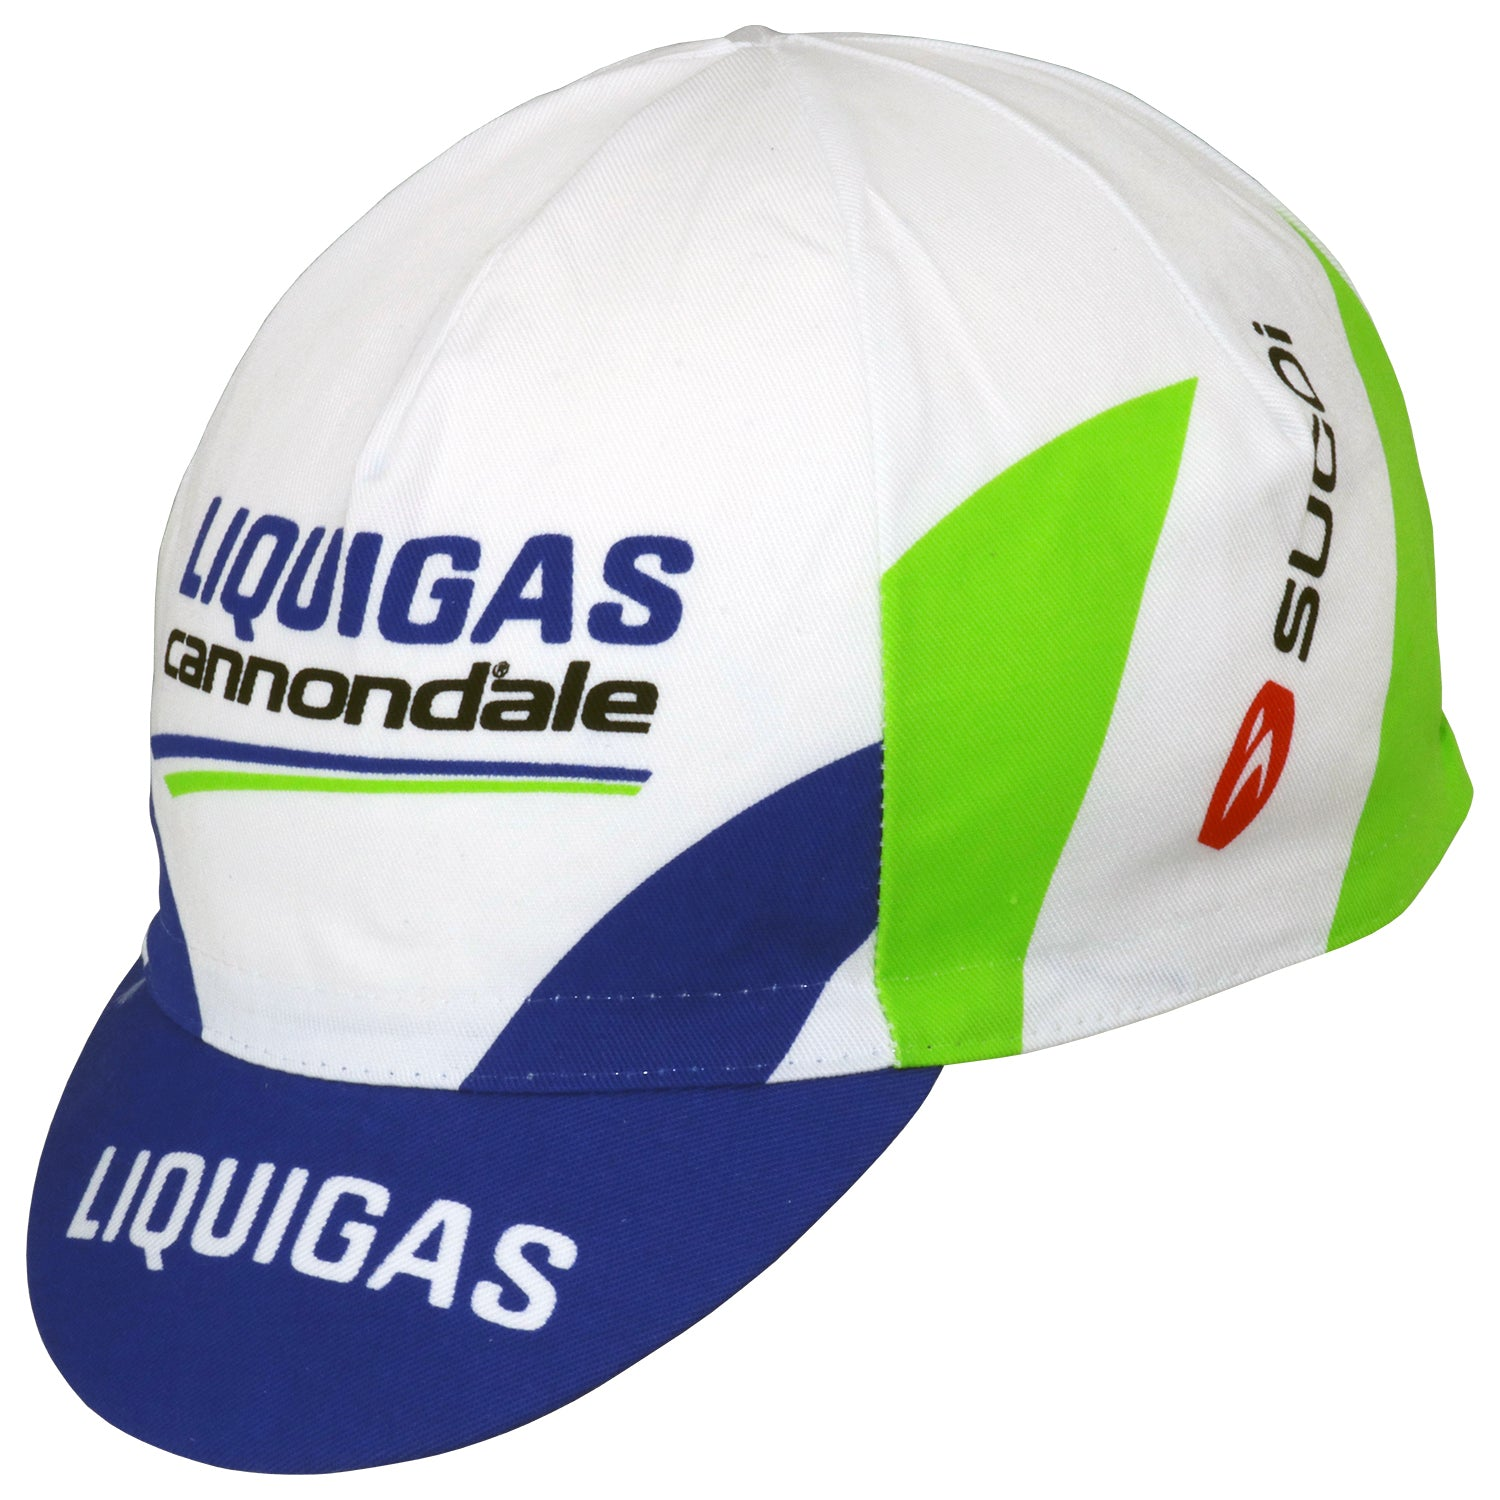 Liquigas Cannondale Sugoi 2011 Cotton Cycling Cap